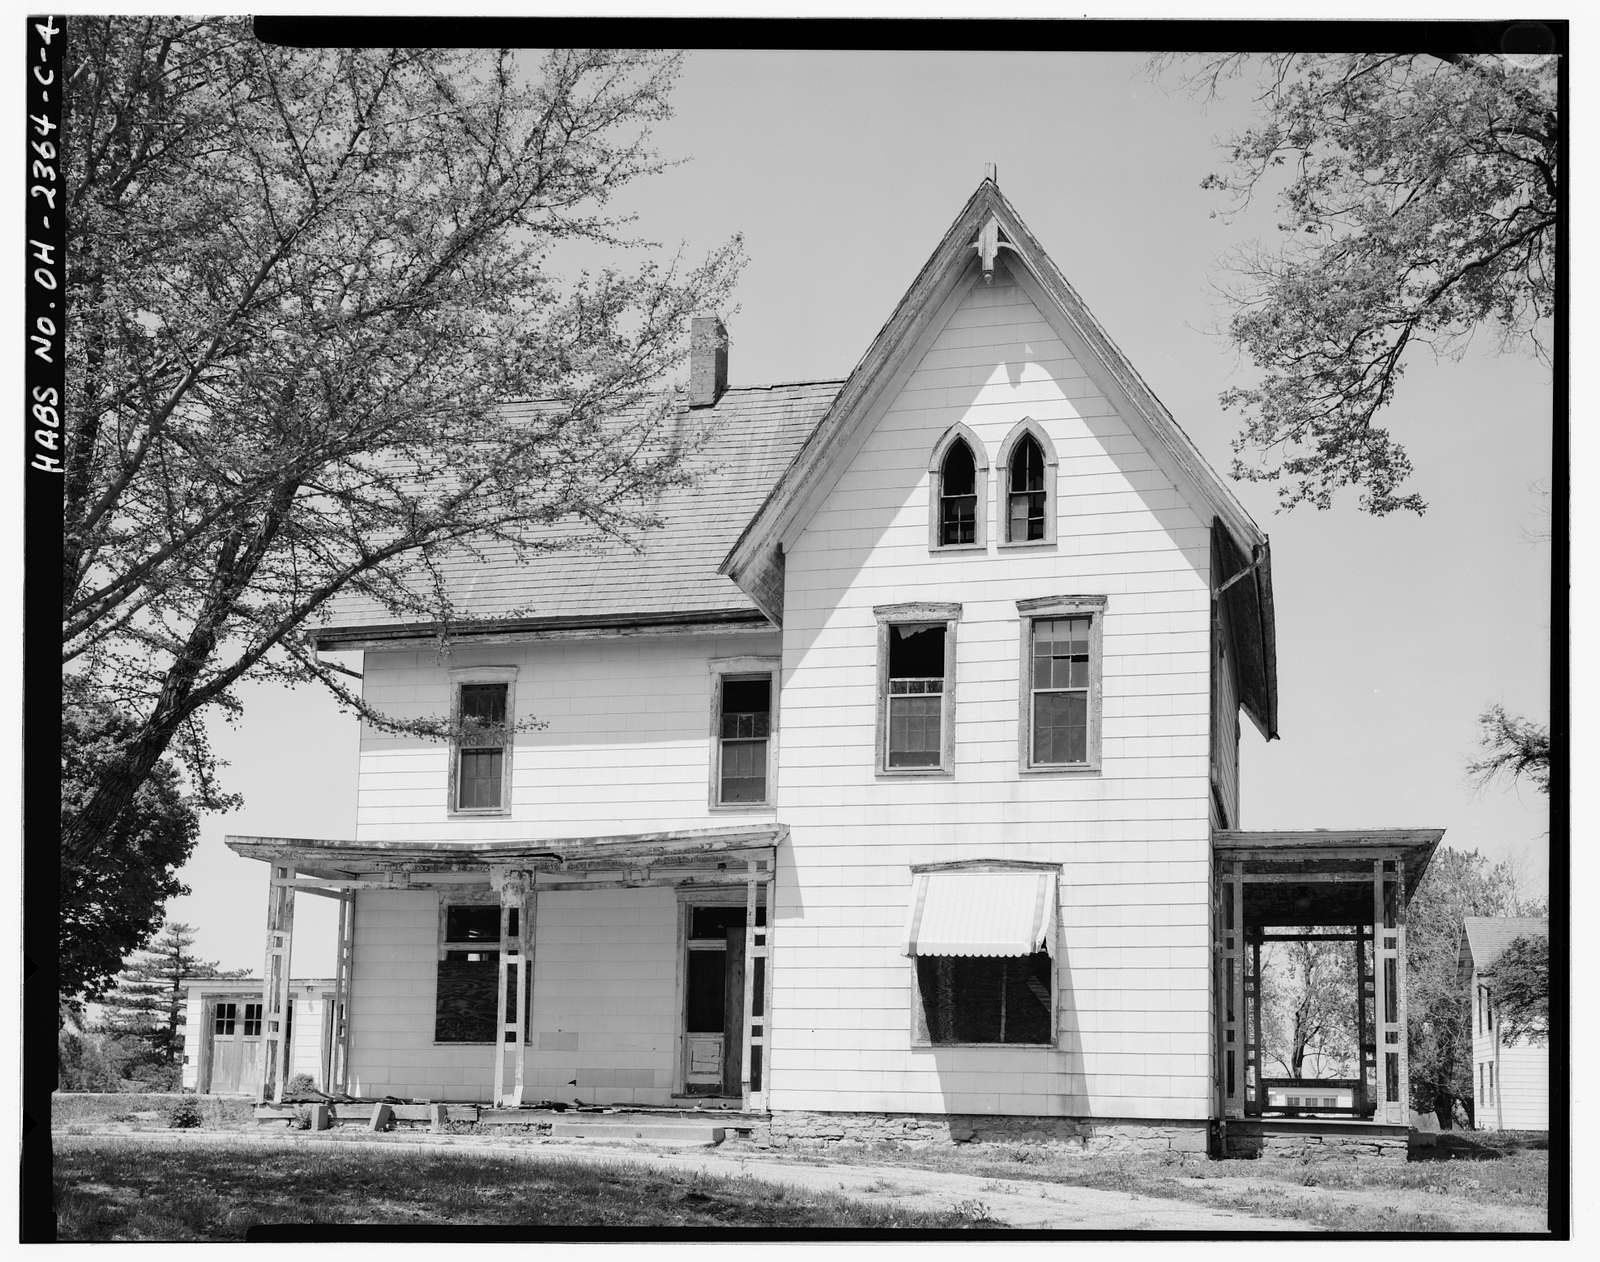 National Home for Disabled Volunteer Soldiers, Central Branch, House, 4100 West Third Street, Dayton, Montgomery County, OH